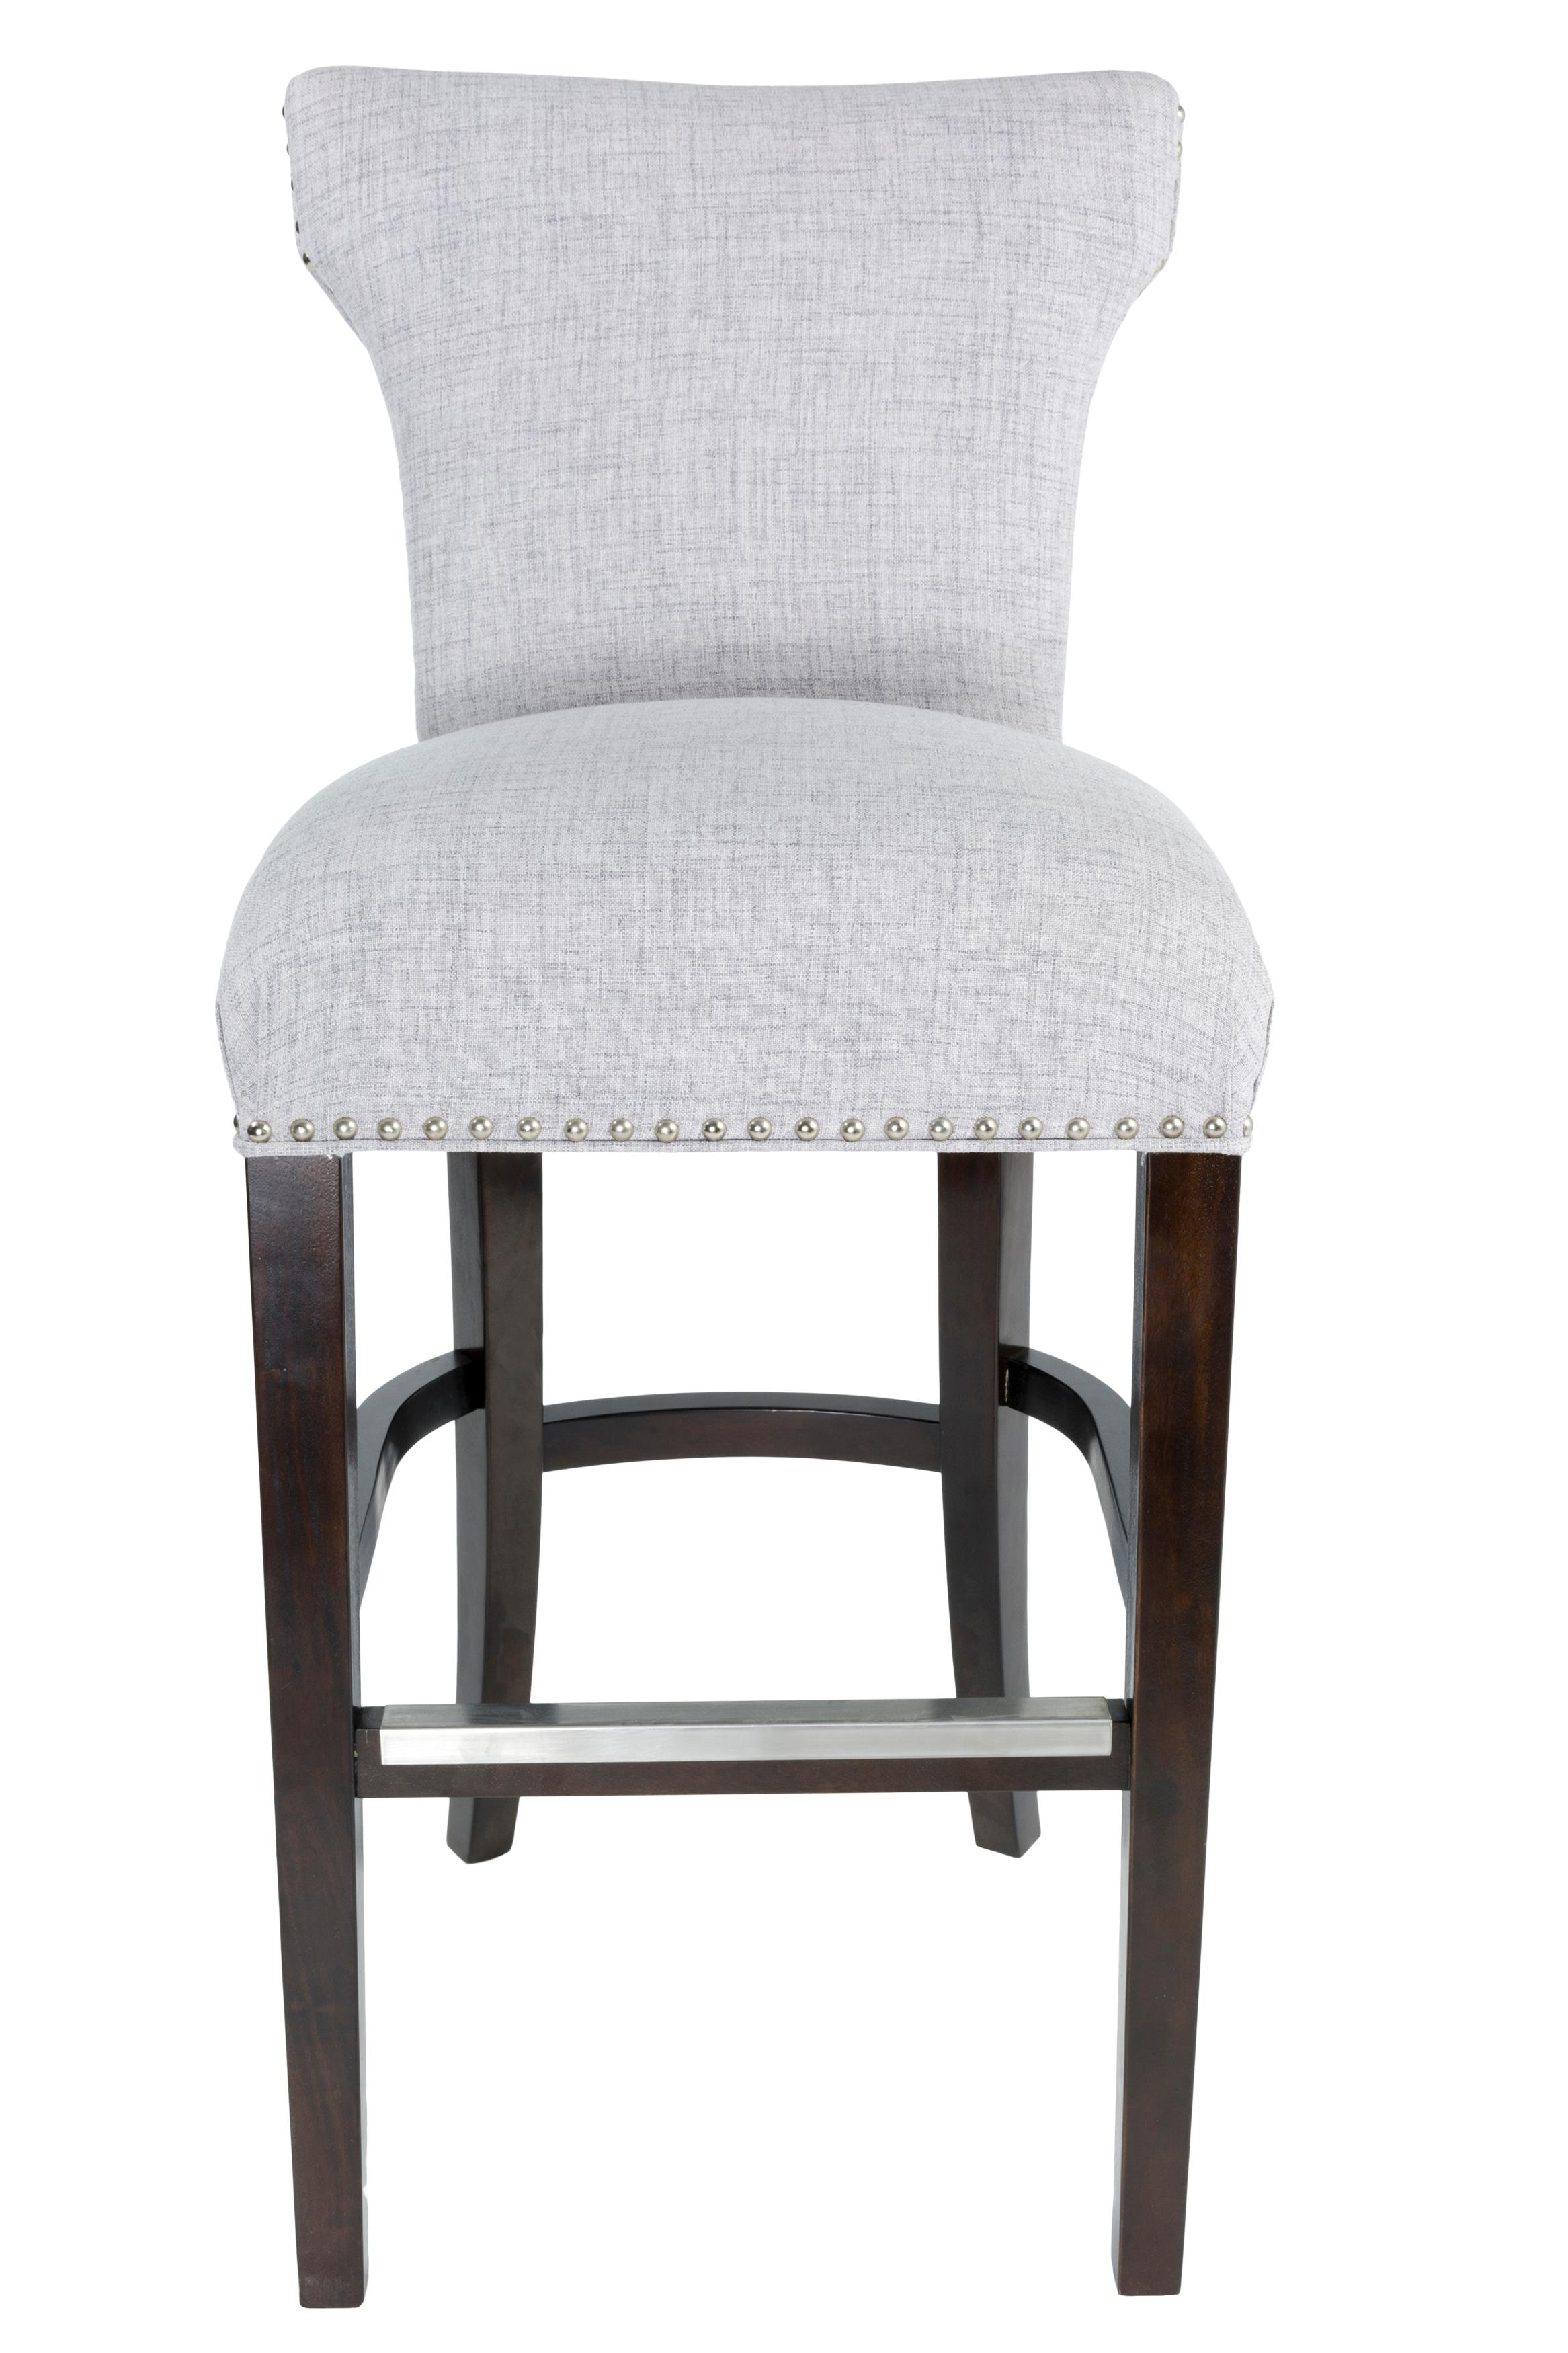 Beautiful Upholstered Bar Stools with Backs